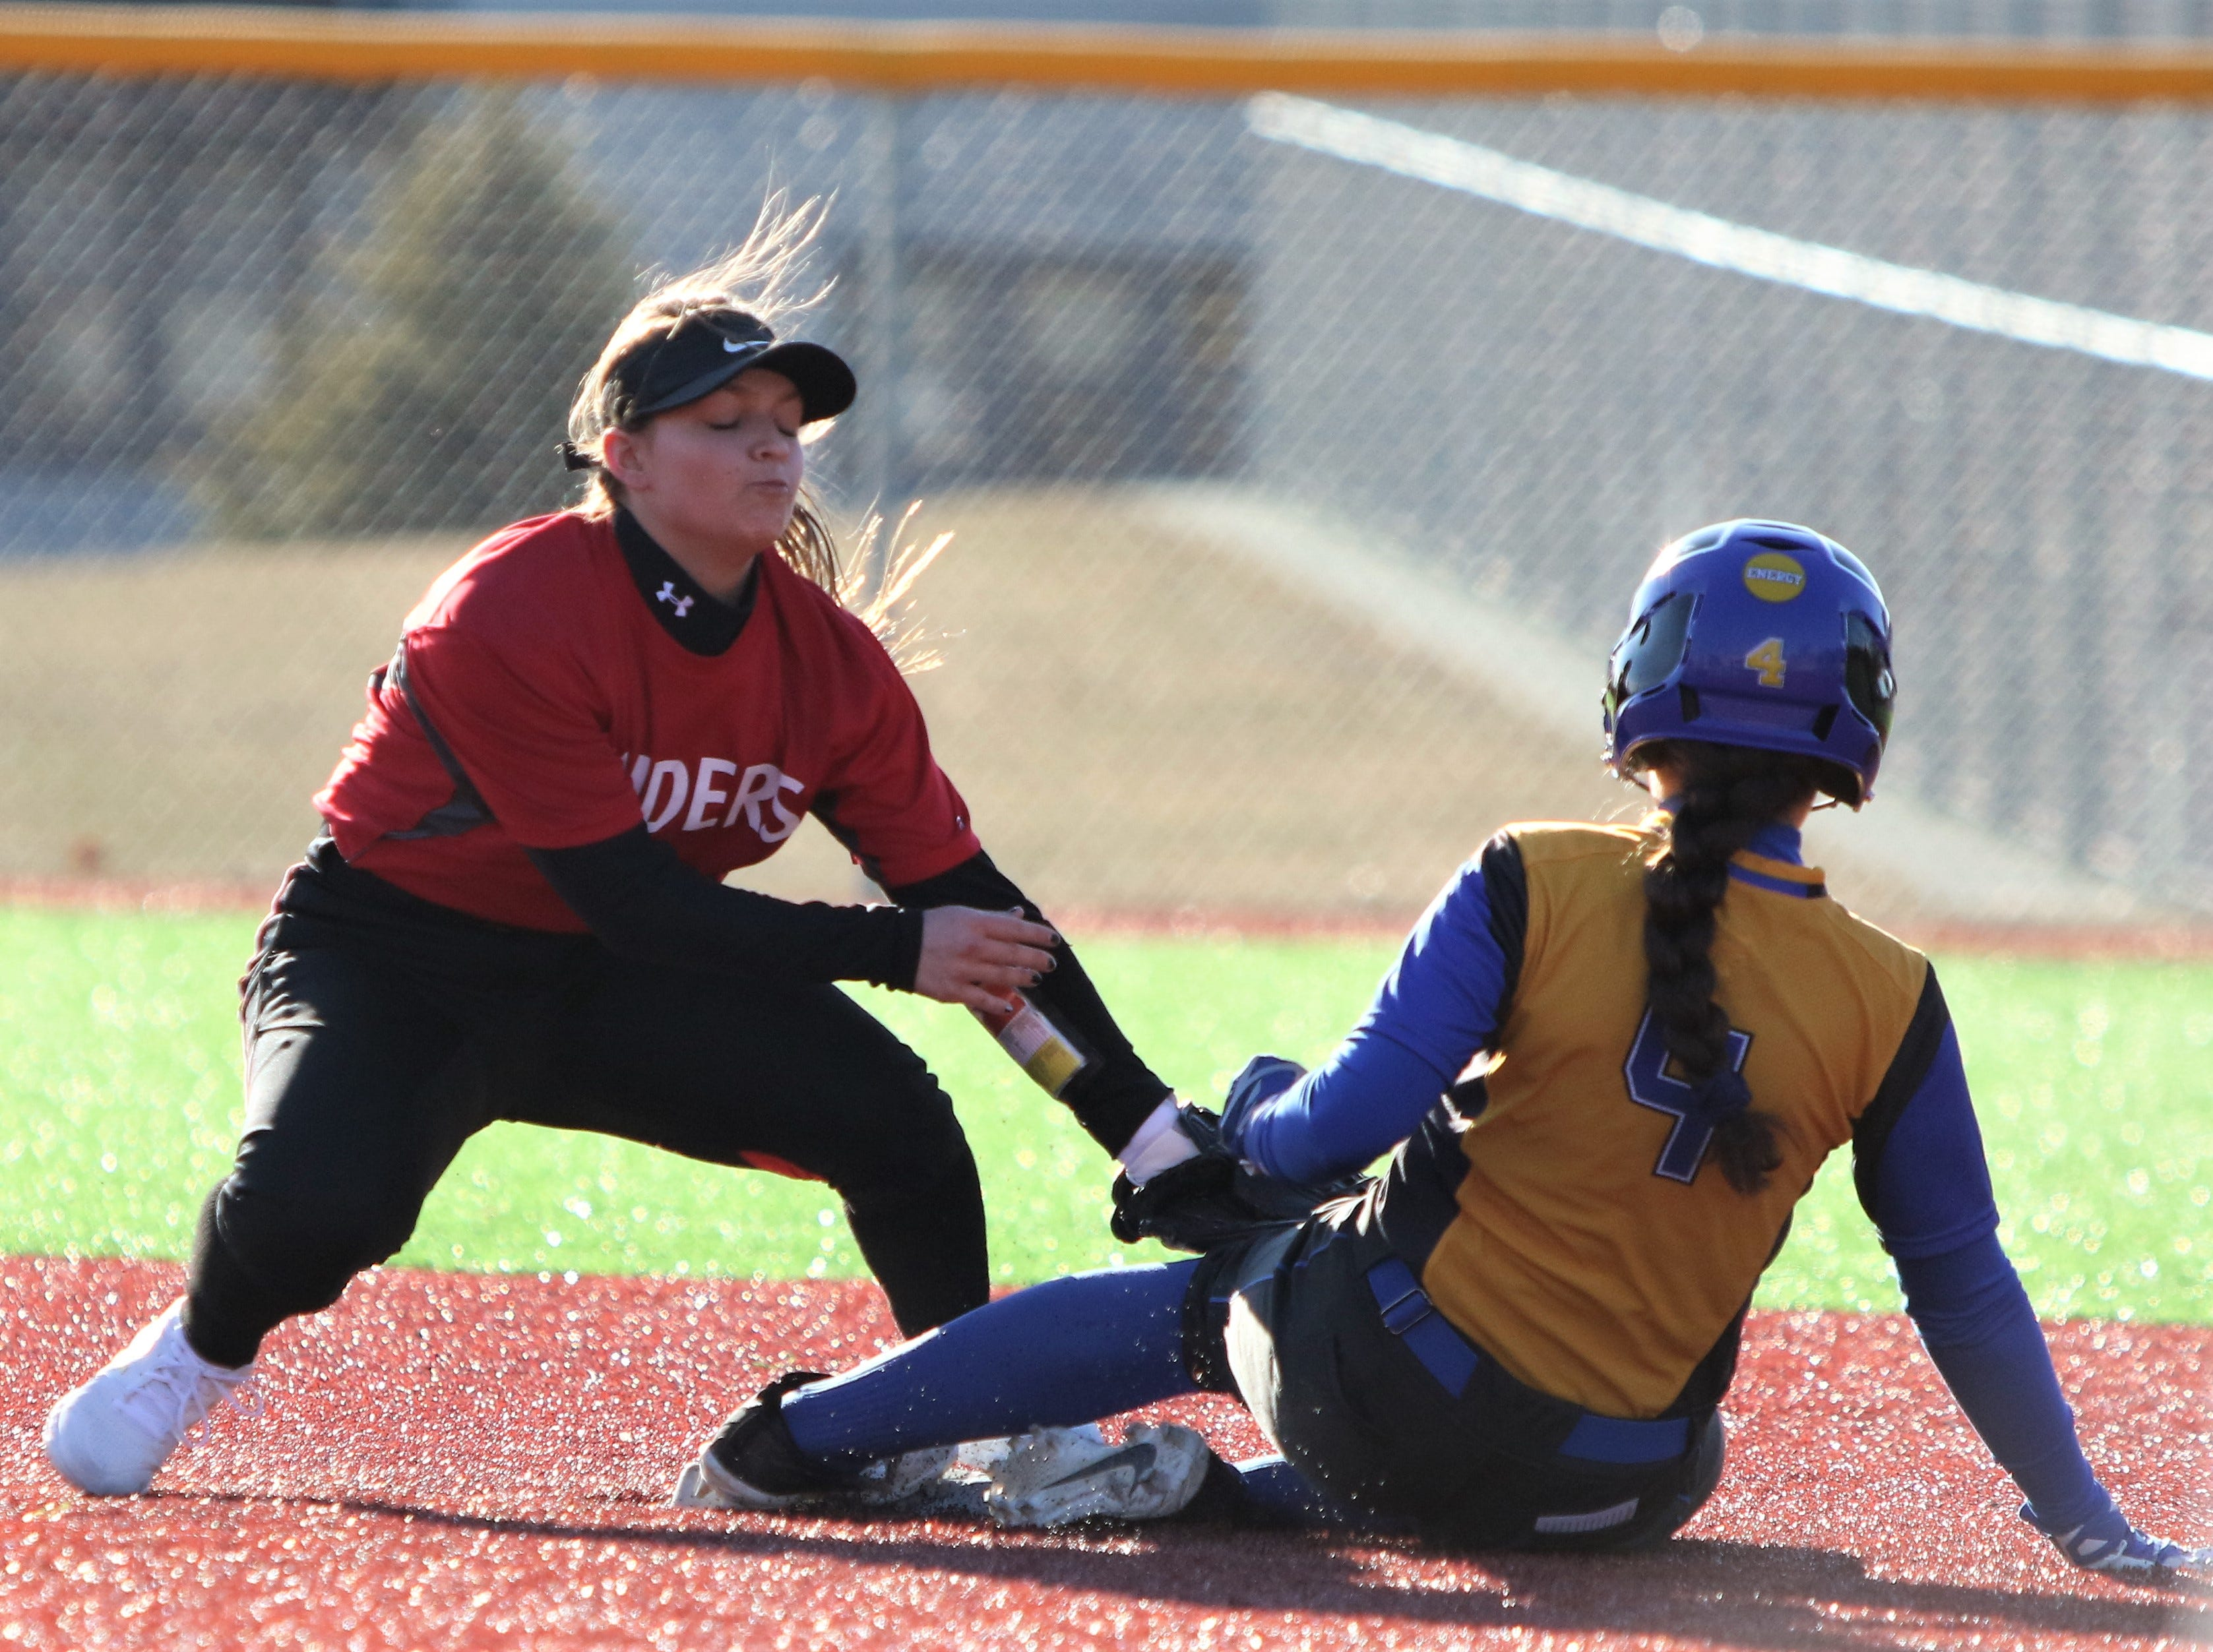 Catholic Memorial sophomore Maria Serb slides in safely at second base in a game against Wauwatosa East on March 19, 2019.